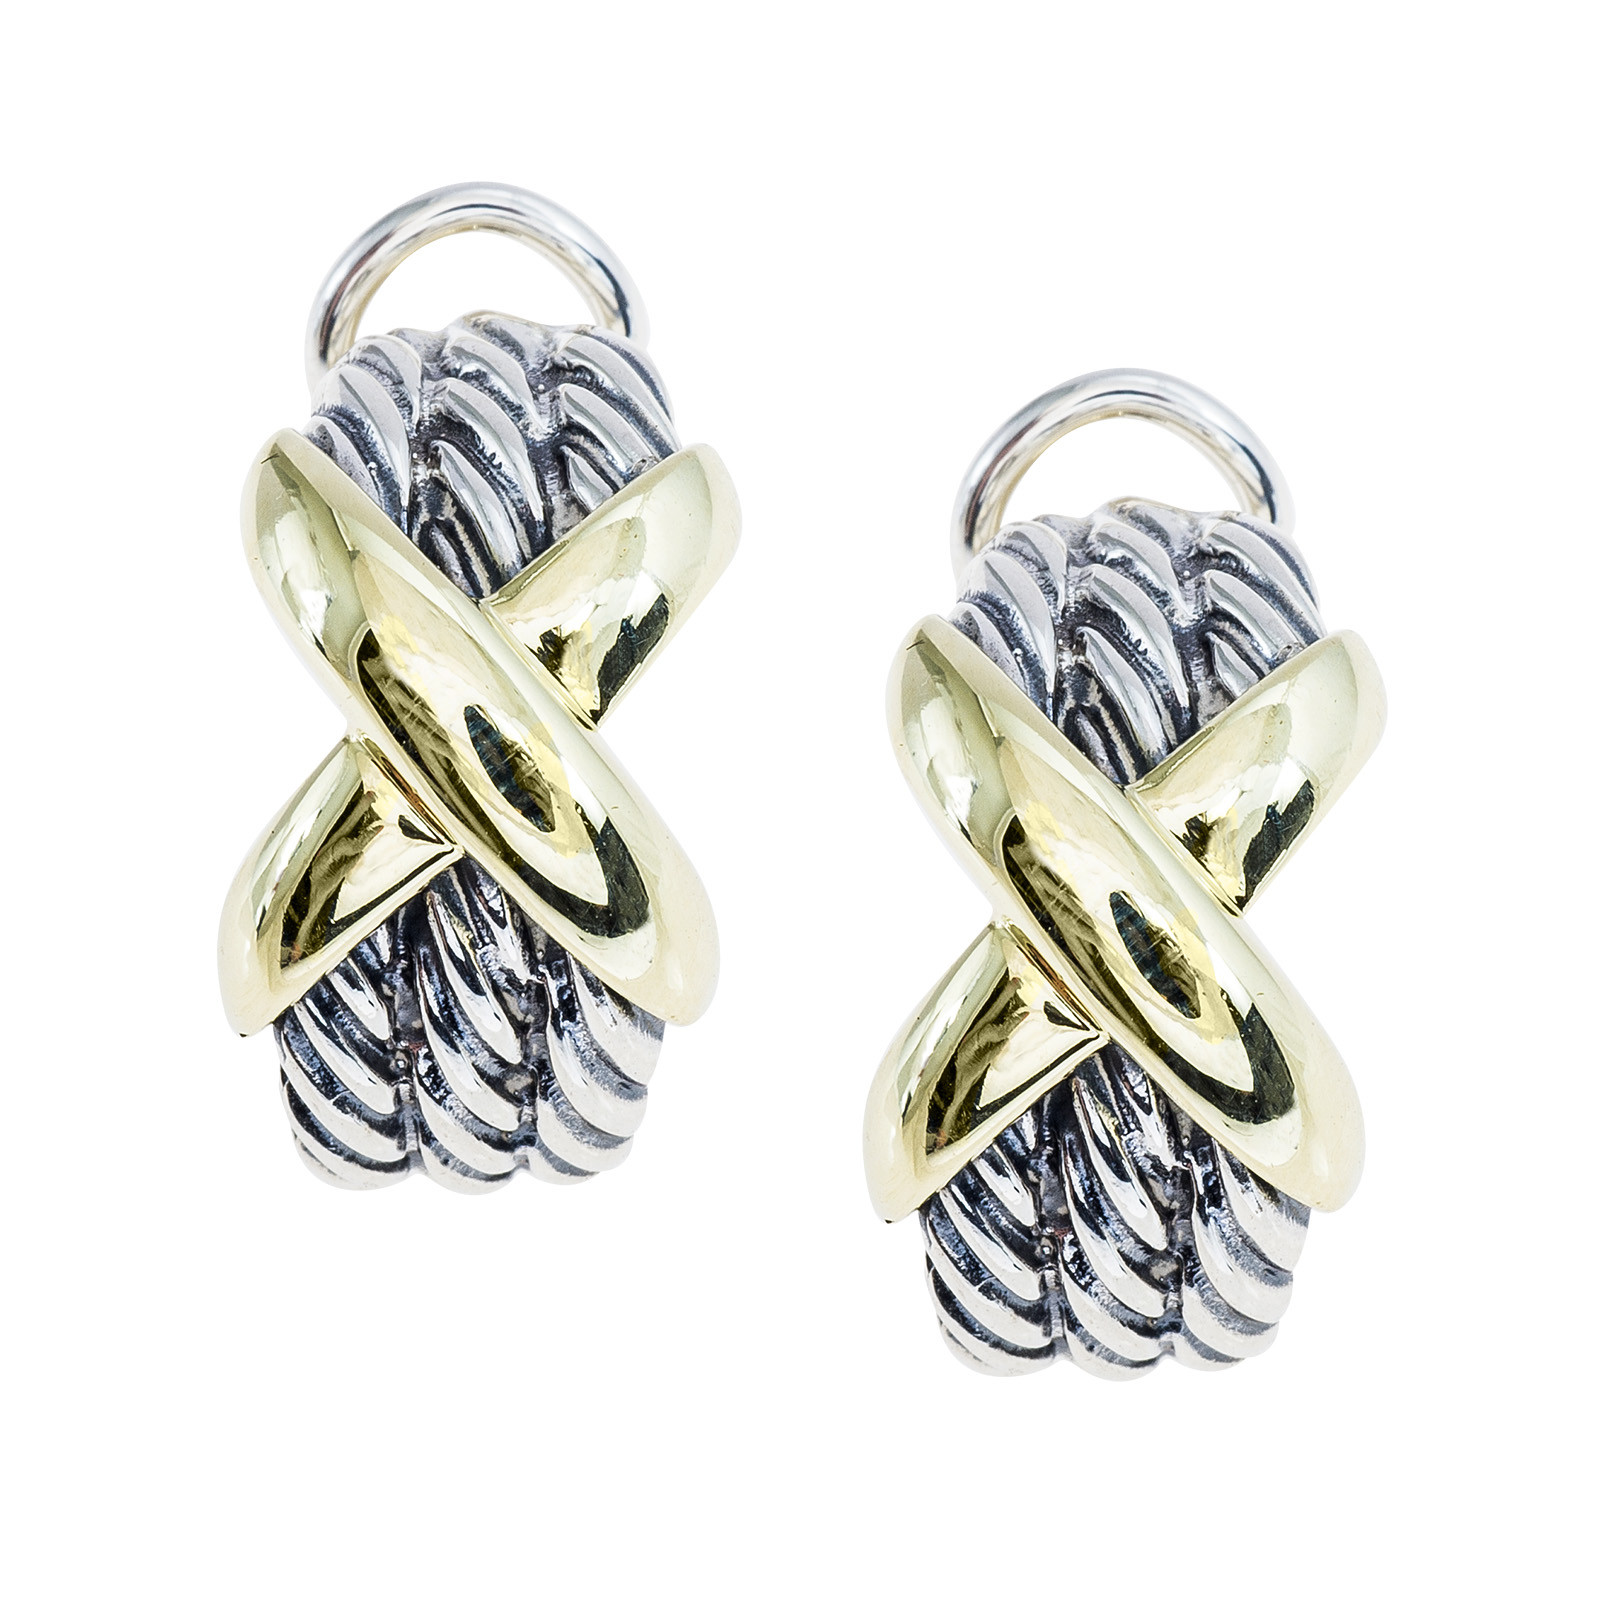 Vintage David Yurman Cable Clics X Crossover Earrings Gallery Image